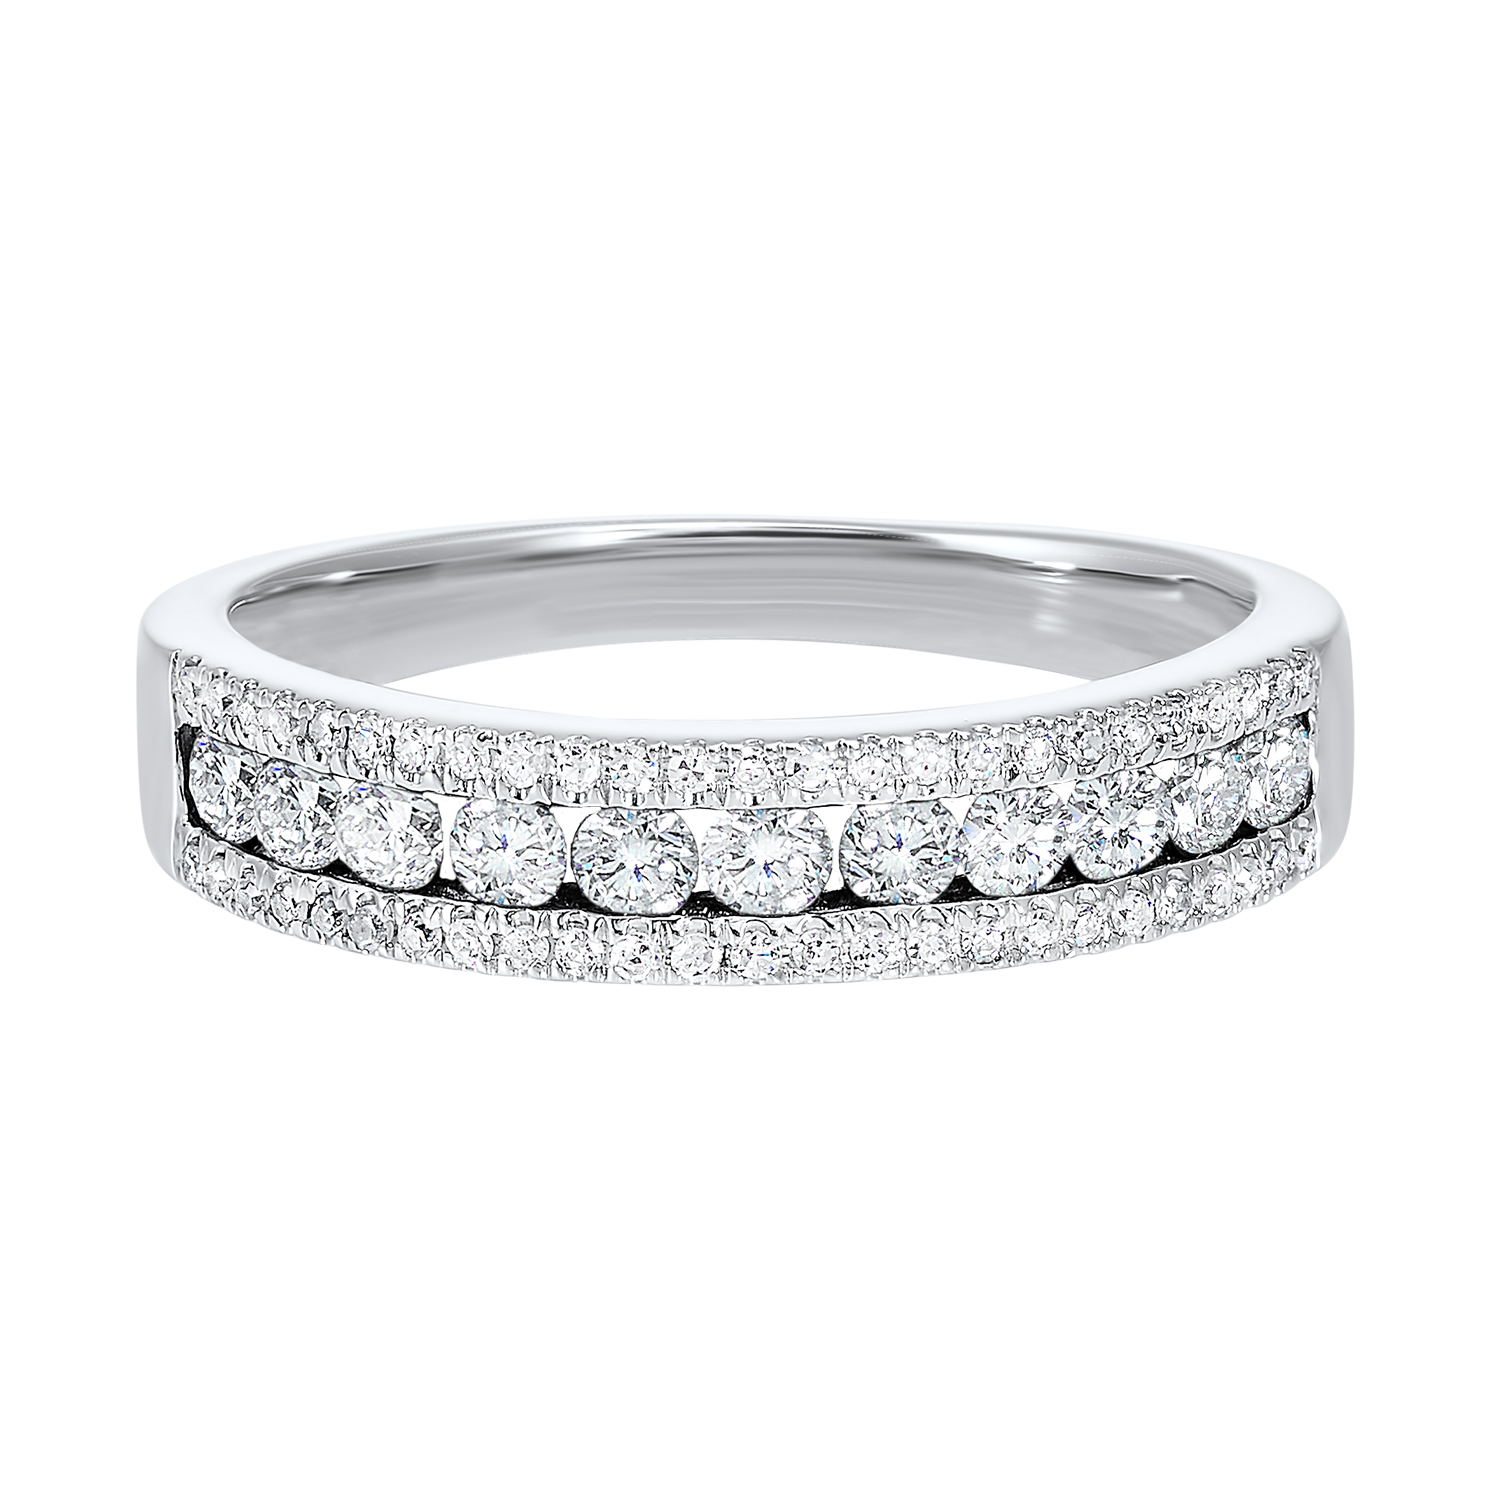 14K White Gold 3 Row Multi Channel Diamond Band (1/2 ct. tw.) Moseley Diamond Showcase Inc Columbia, SC